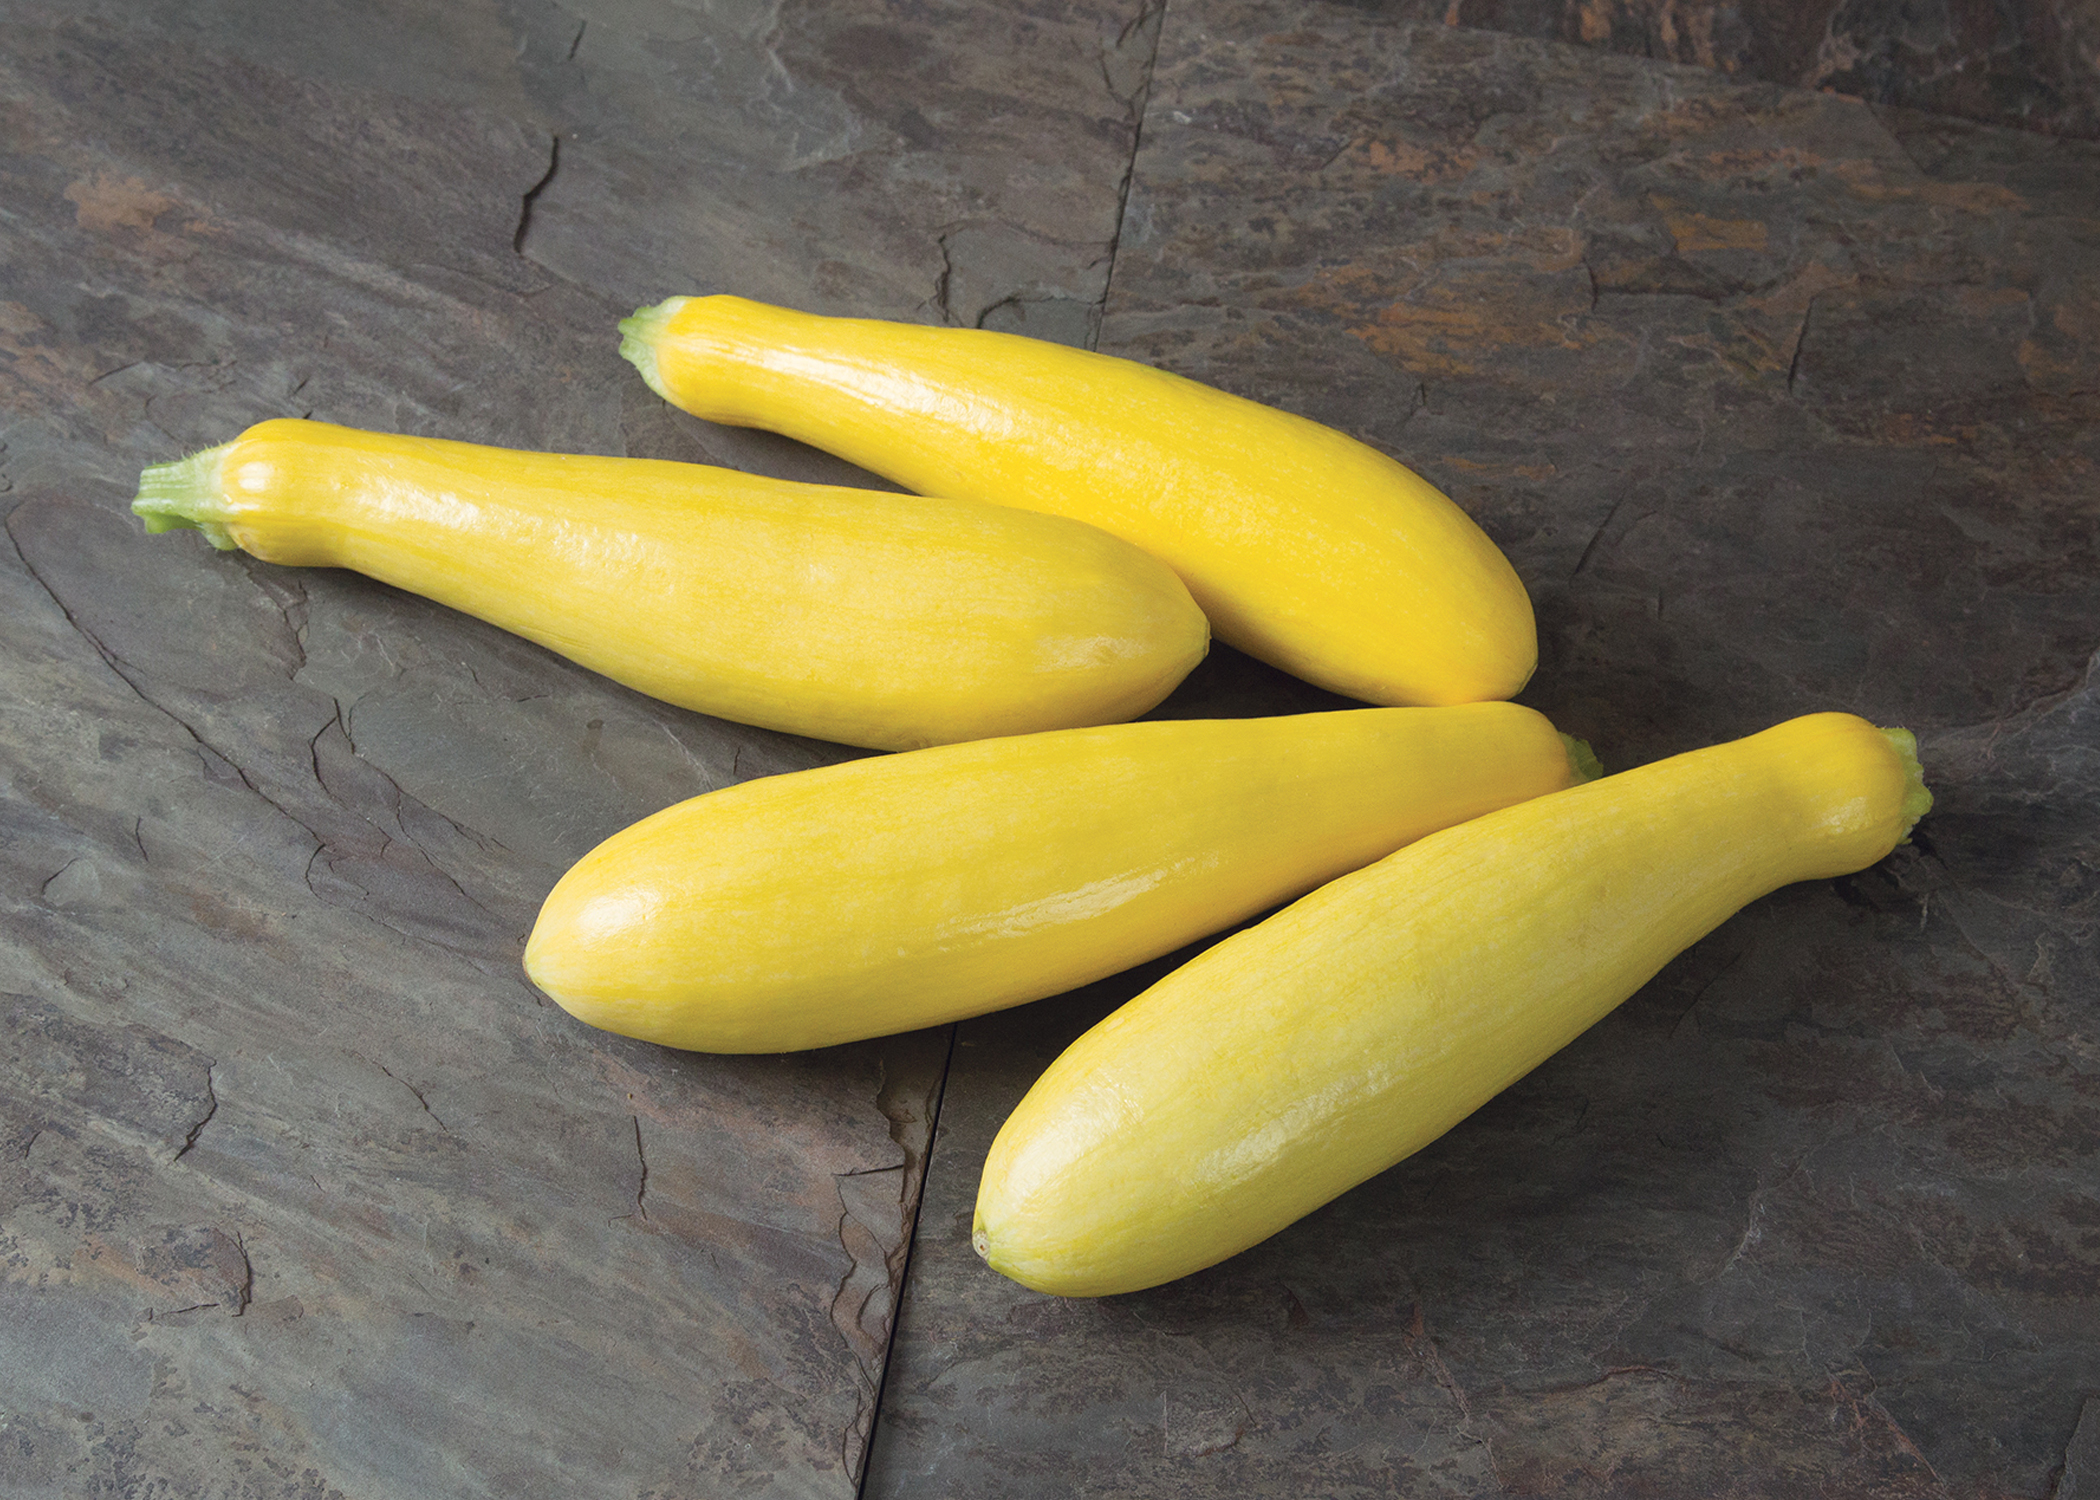 This agronomic image shows the squash variety called Grandprize.